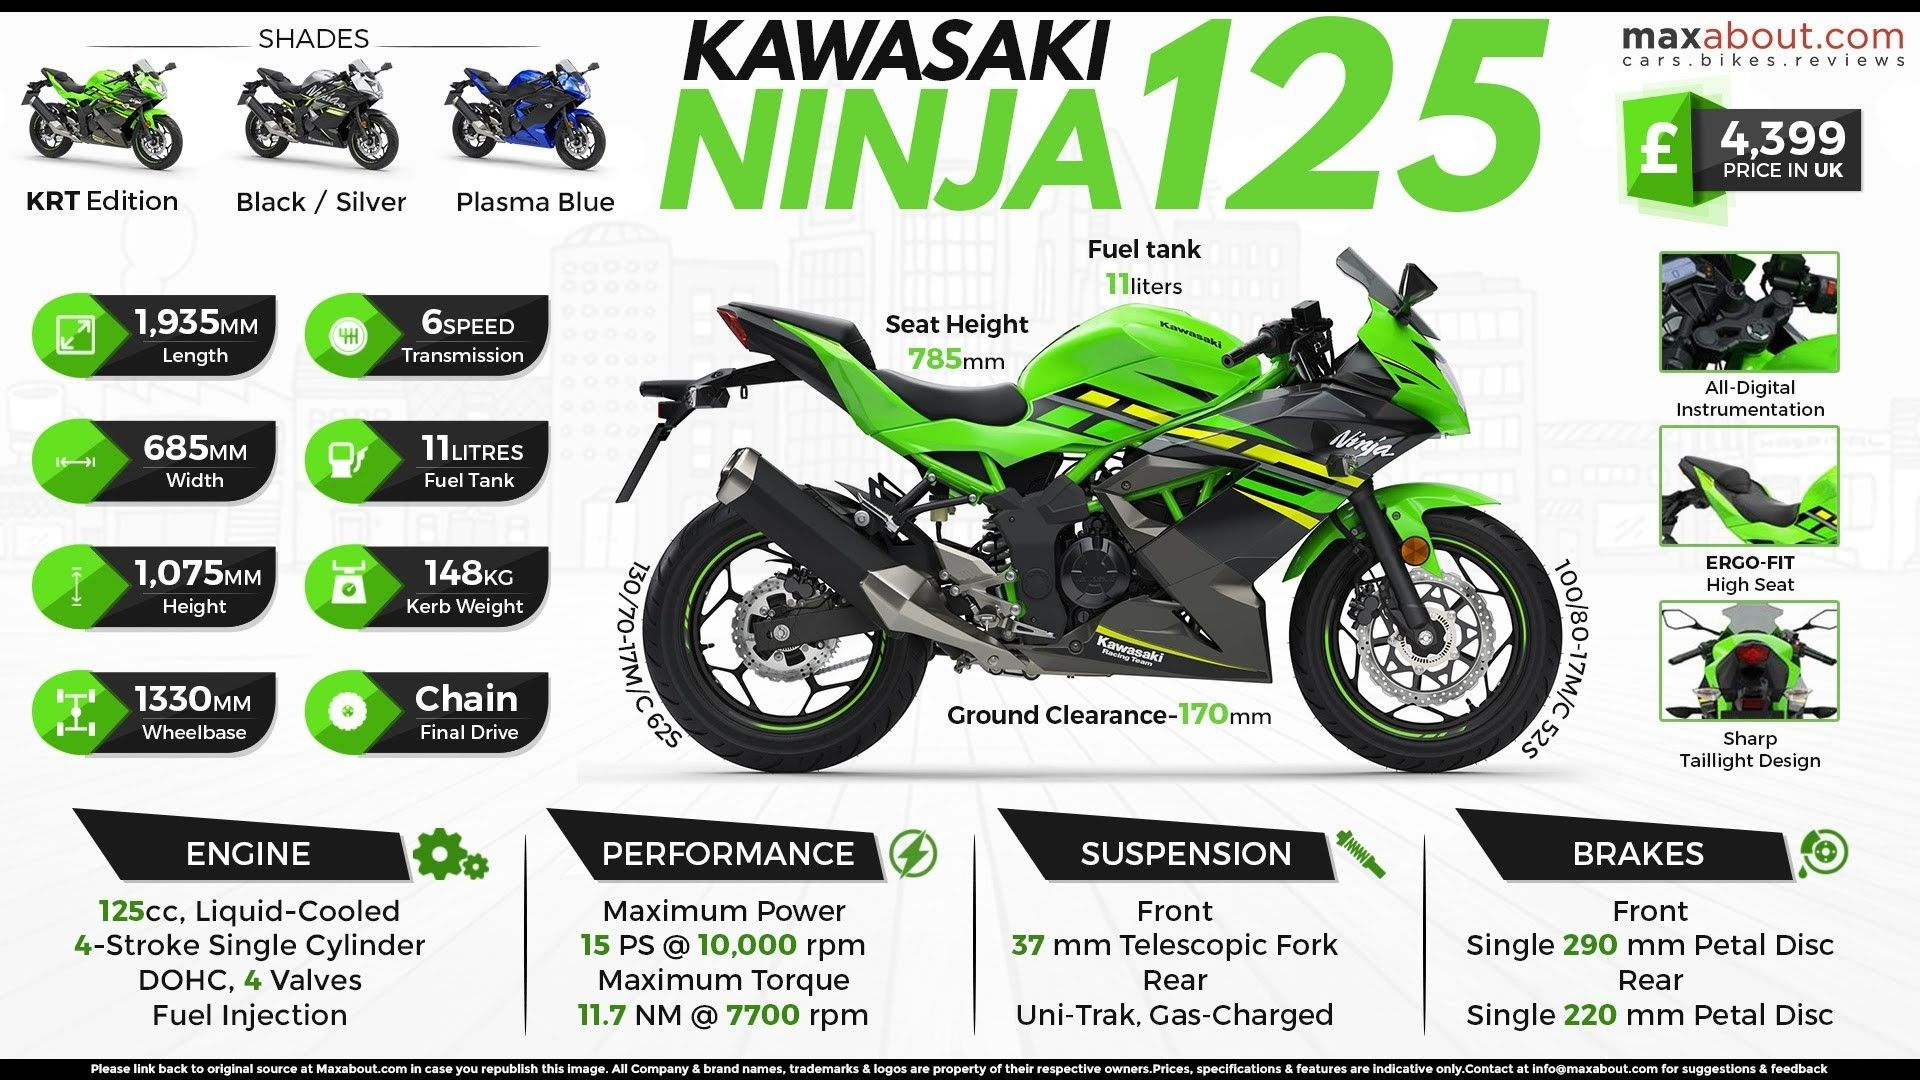 Pin By Prikshitsaini On Bikes Infographic Final Drive Black